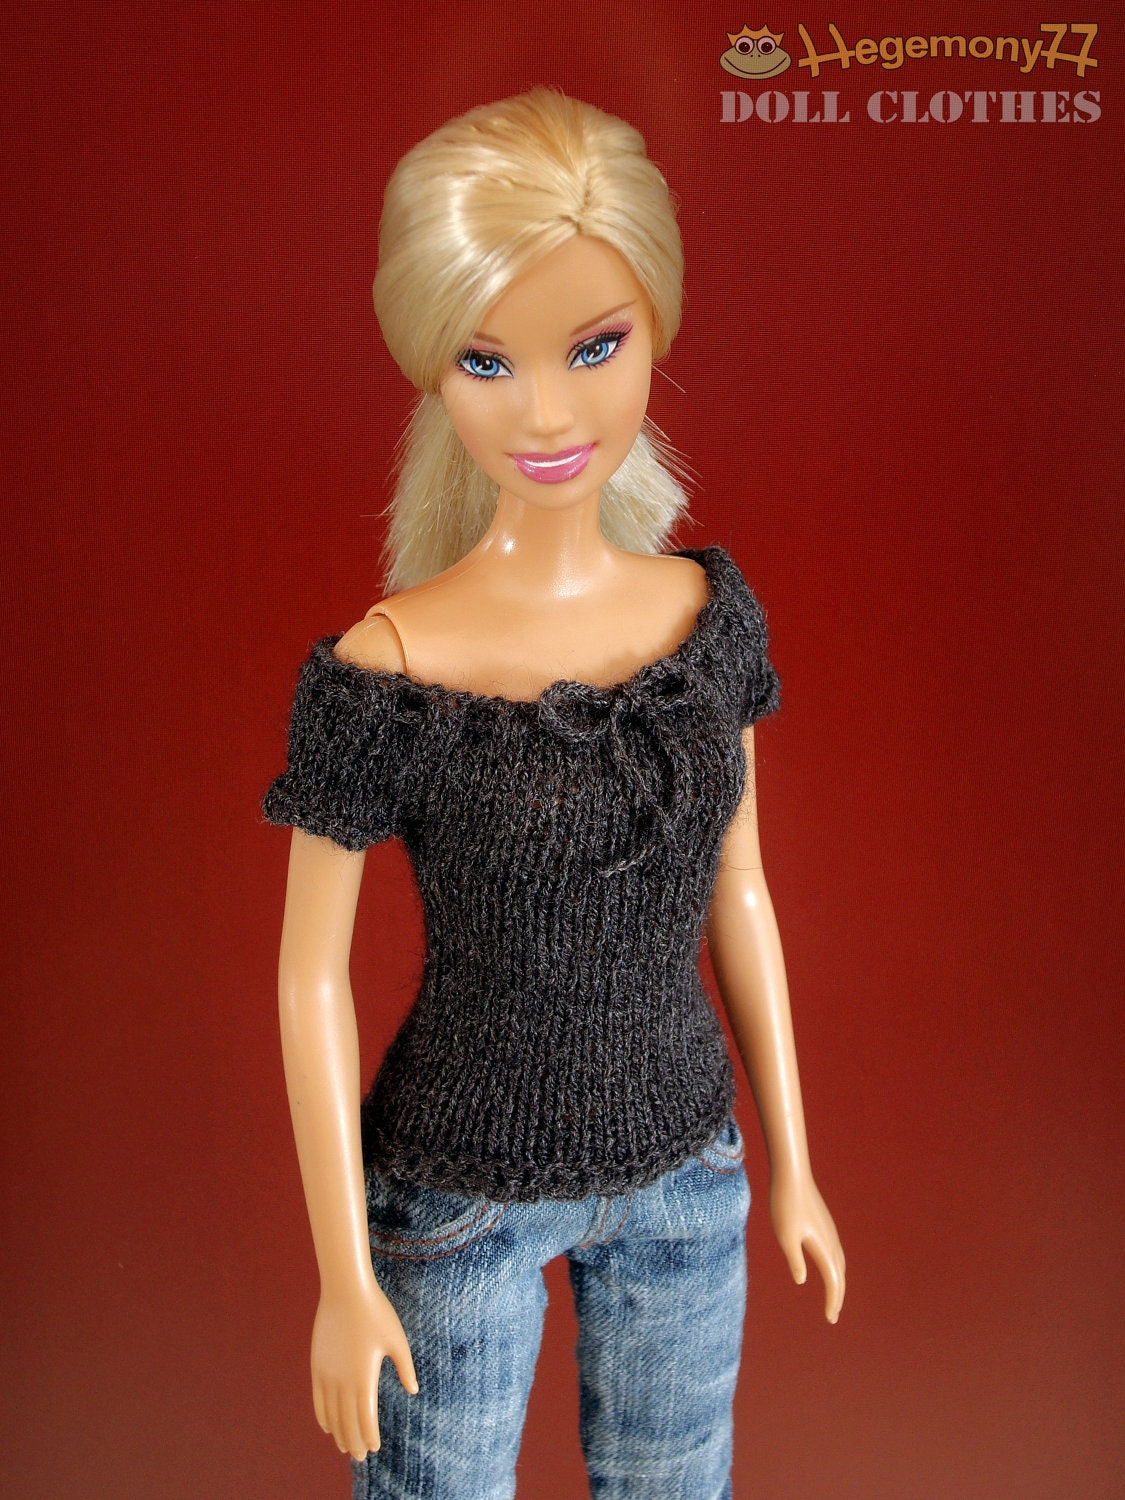 Knitting Clothes For Barbie Dolls : Hand knit doll top for barbie pullip momoko cm obitsu